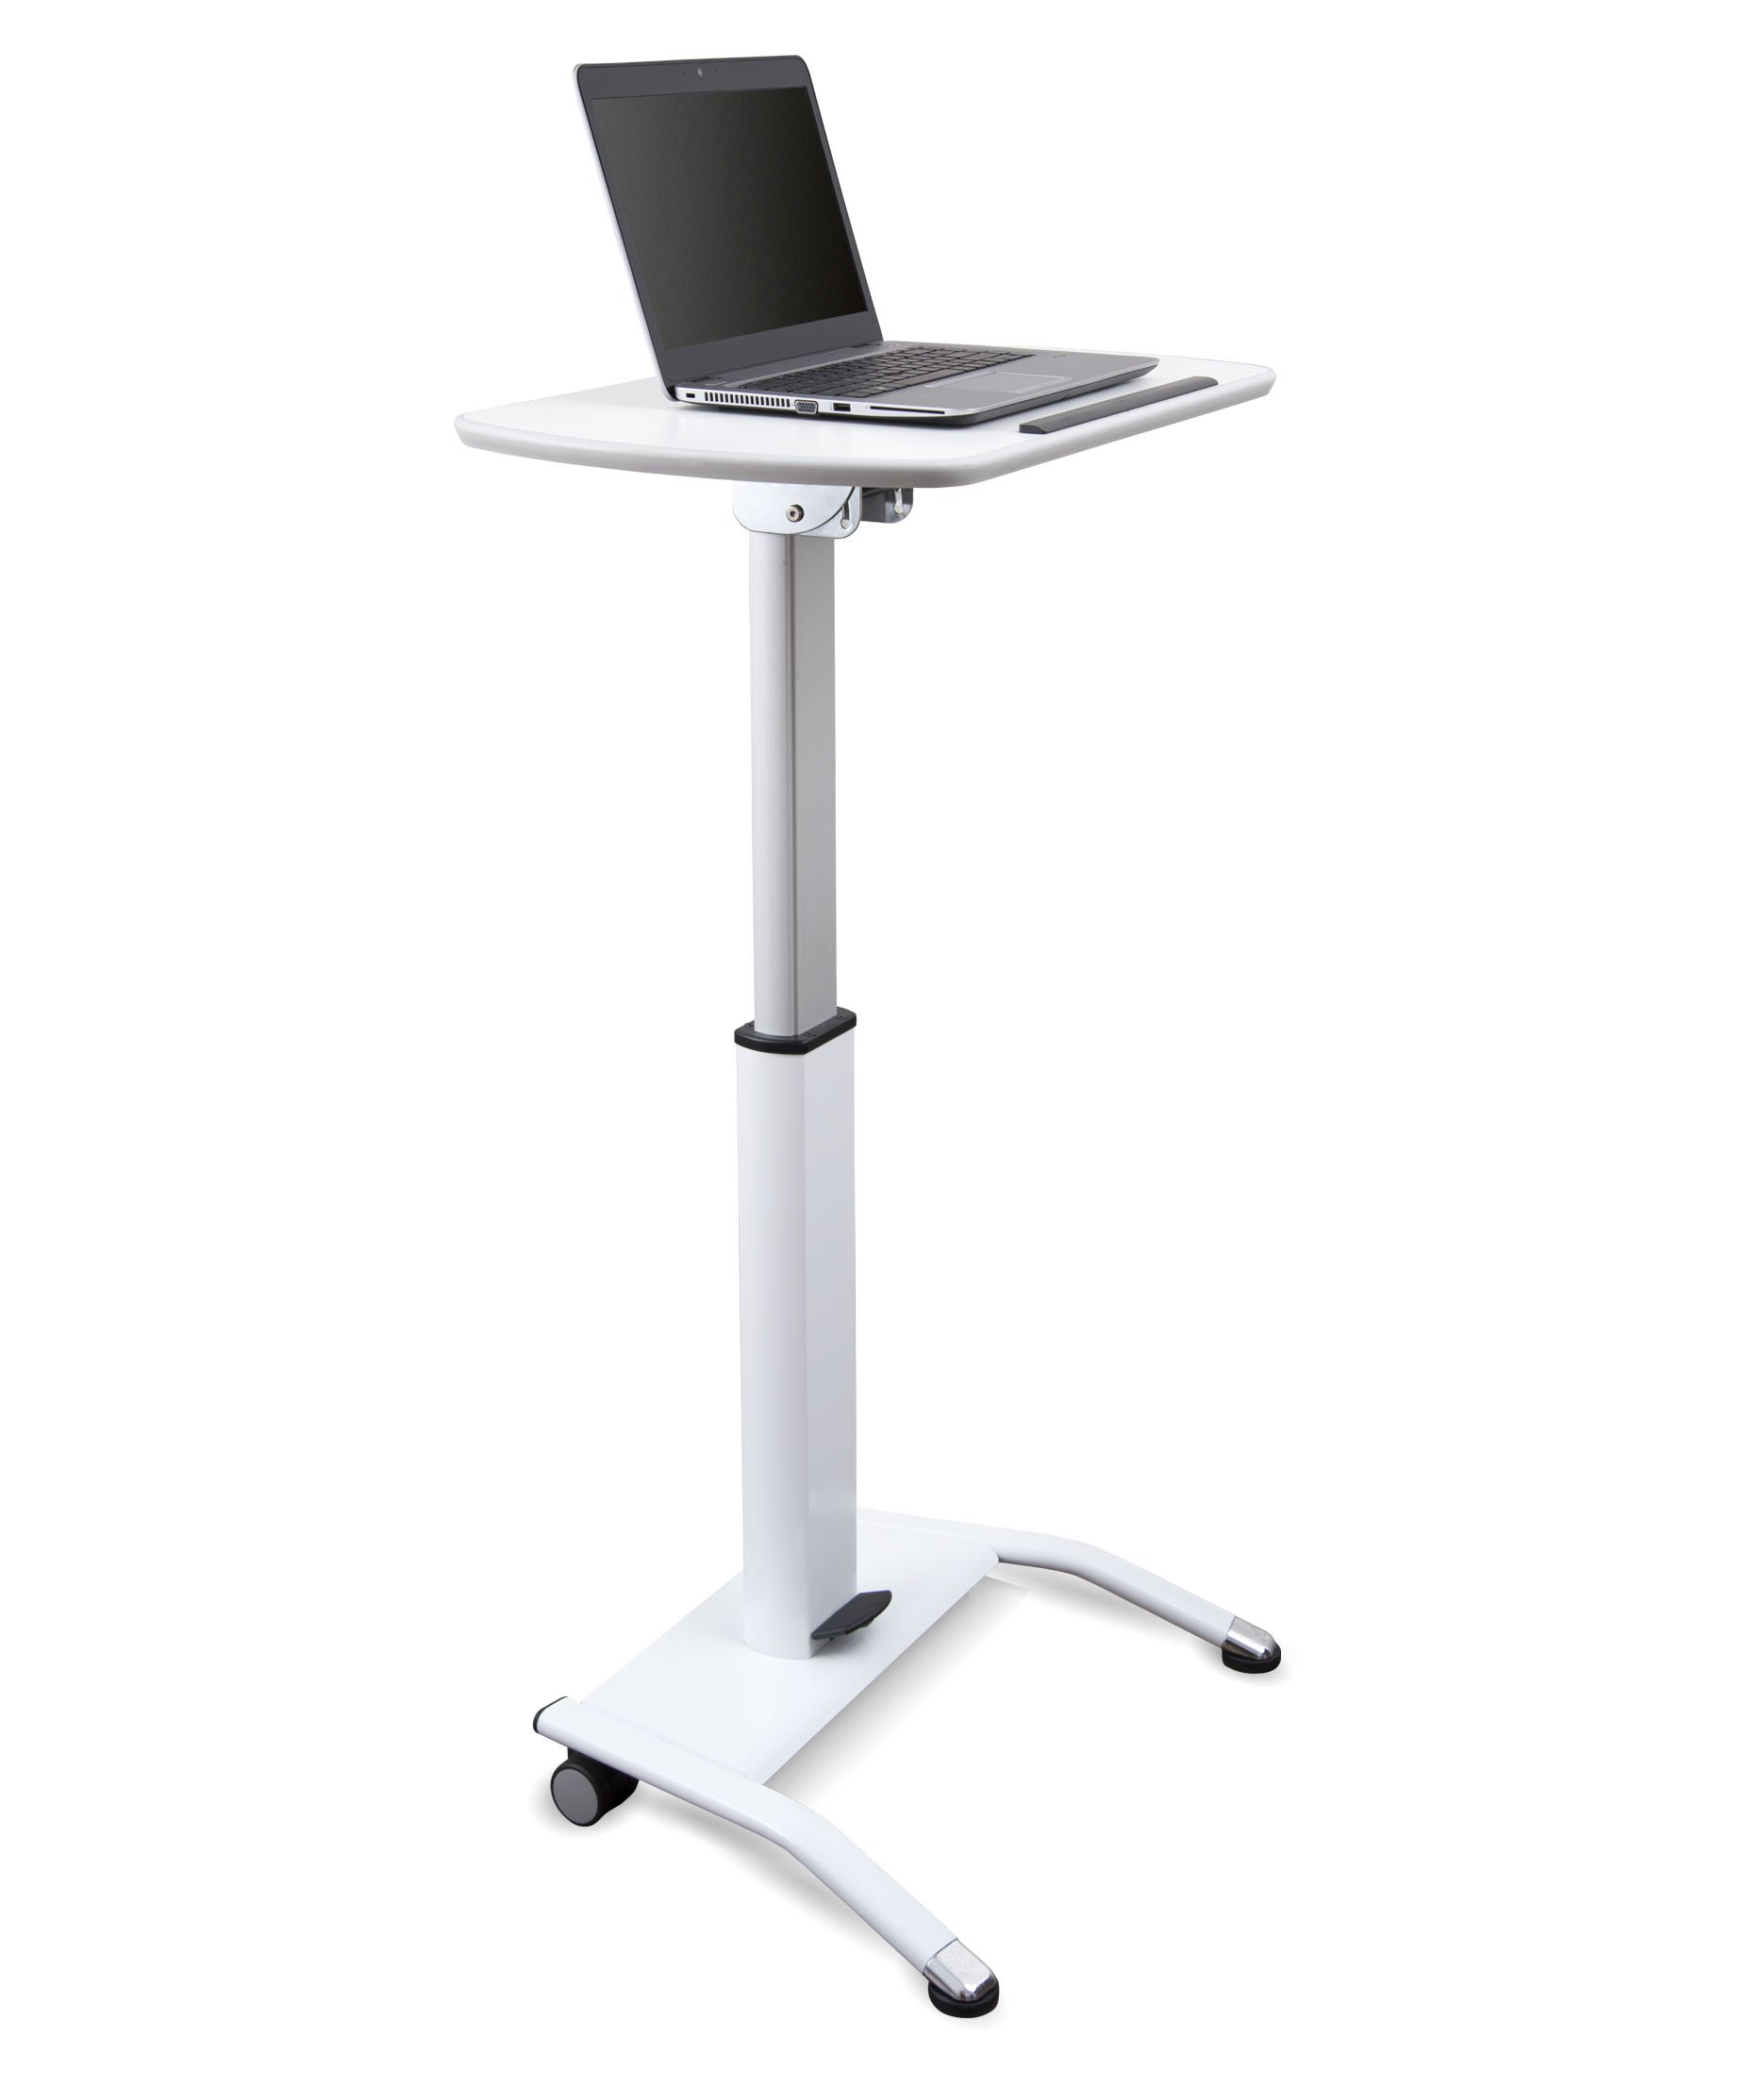 Pneumatic Adjustable-Height Lectern (White)